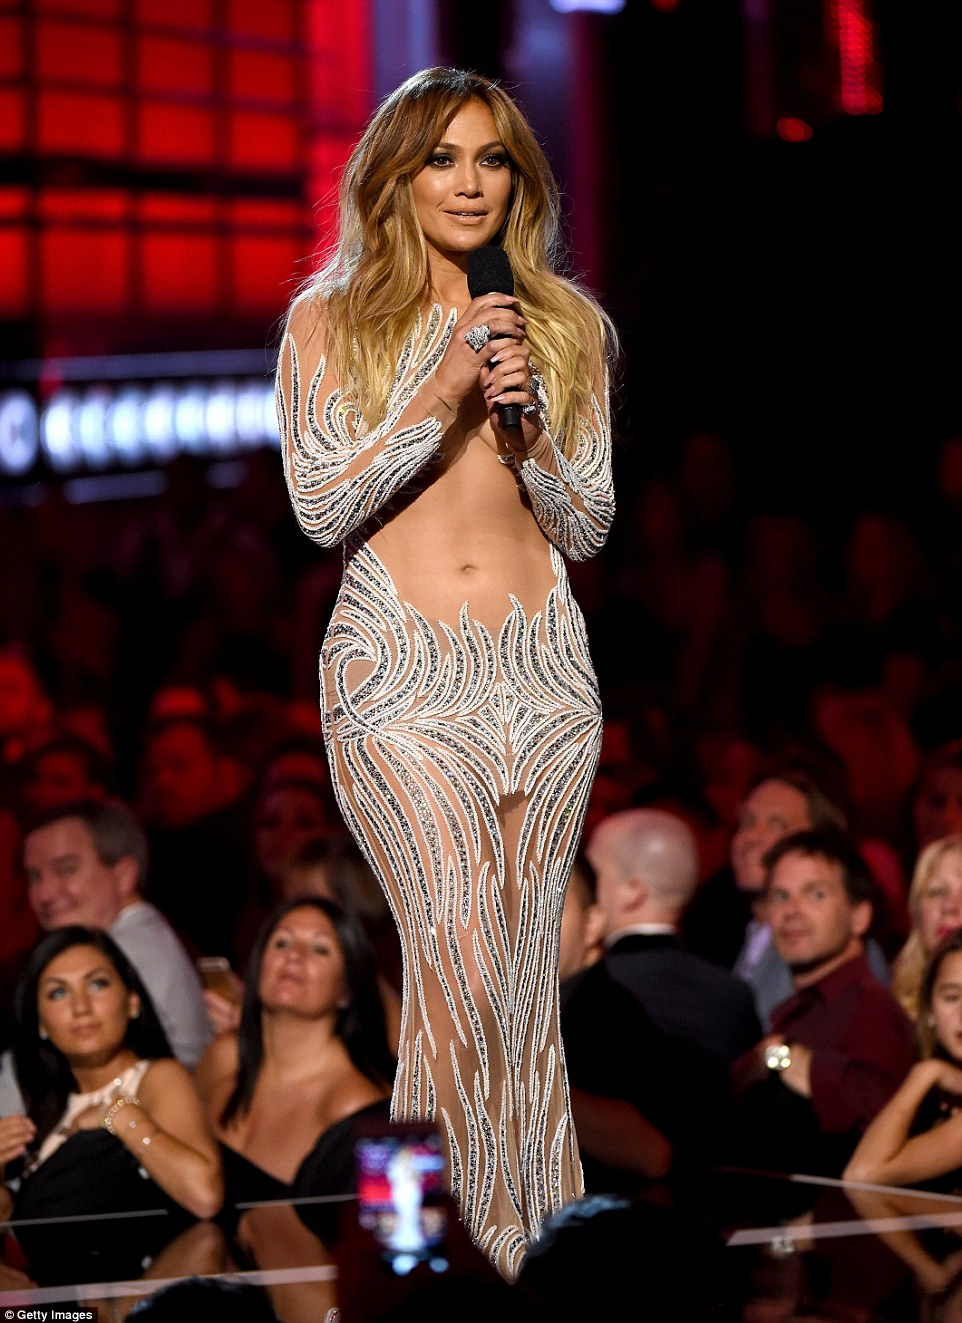 Smoking hot! Jennifer Lopez played presenter in a sheer outfit